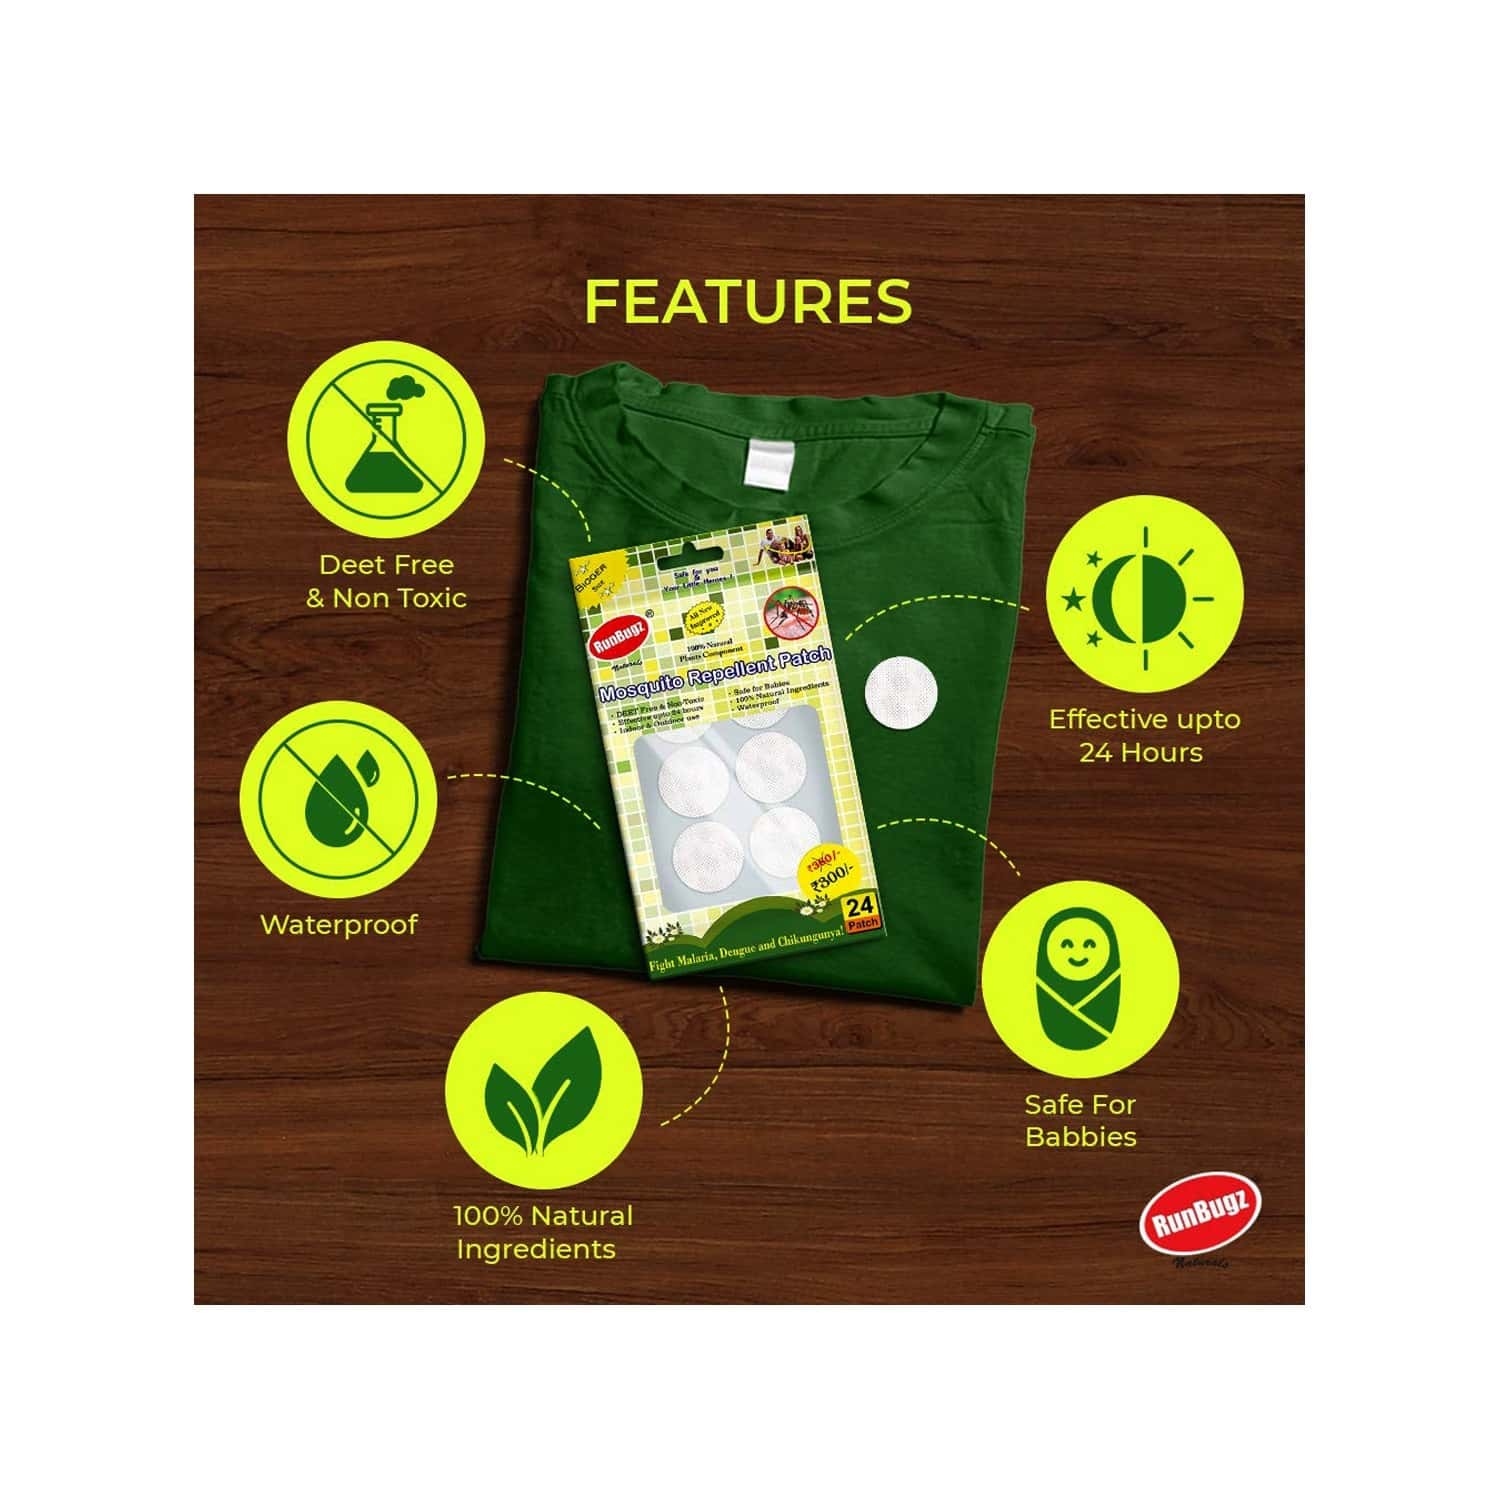 Mosquito Repellent Patches, Anti Mosquito Patch, 24 Patches - White